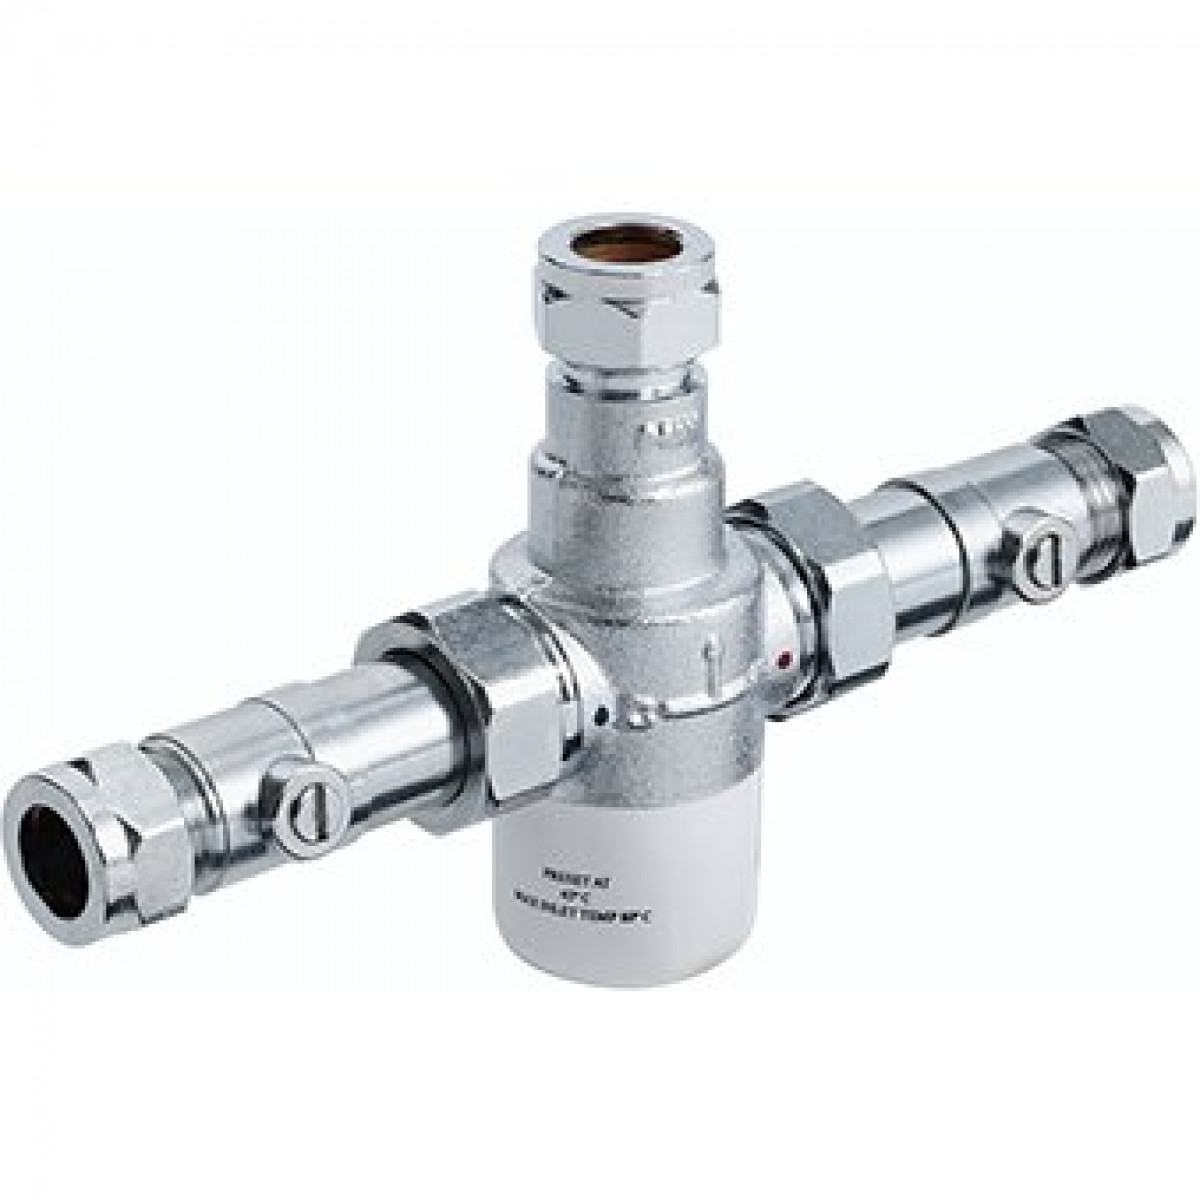 U Type Chrome Electric Water Heater Mixing Valve Single: Bristan 15mm TMV3 Thermostatic Mixing Valve With Isolation